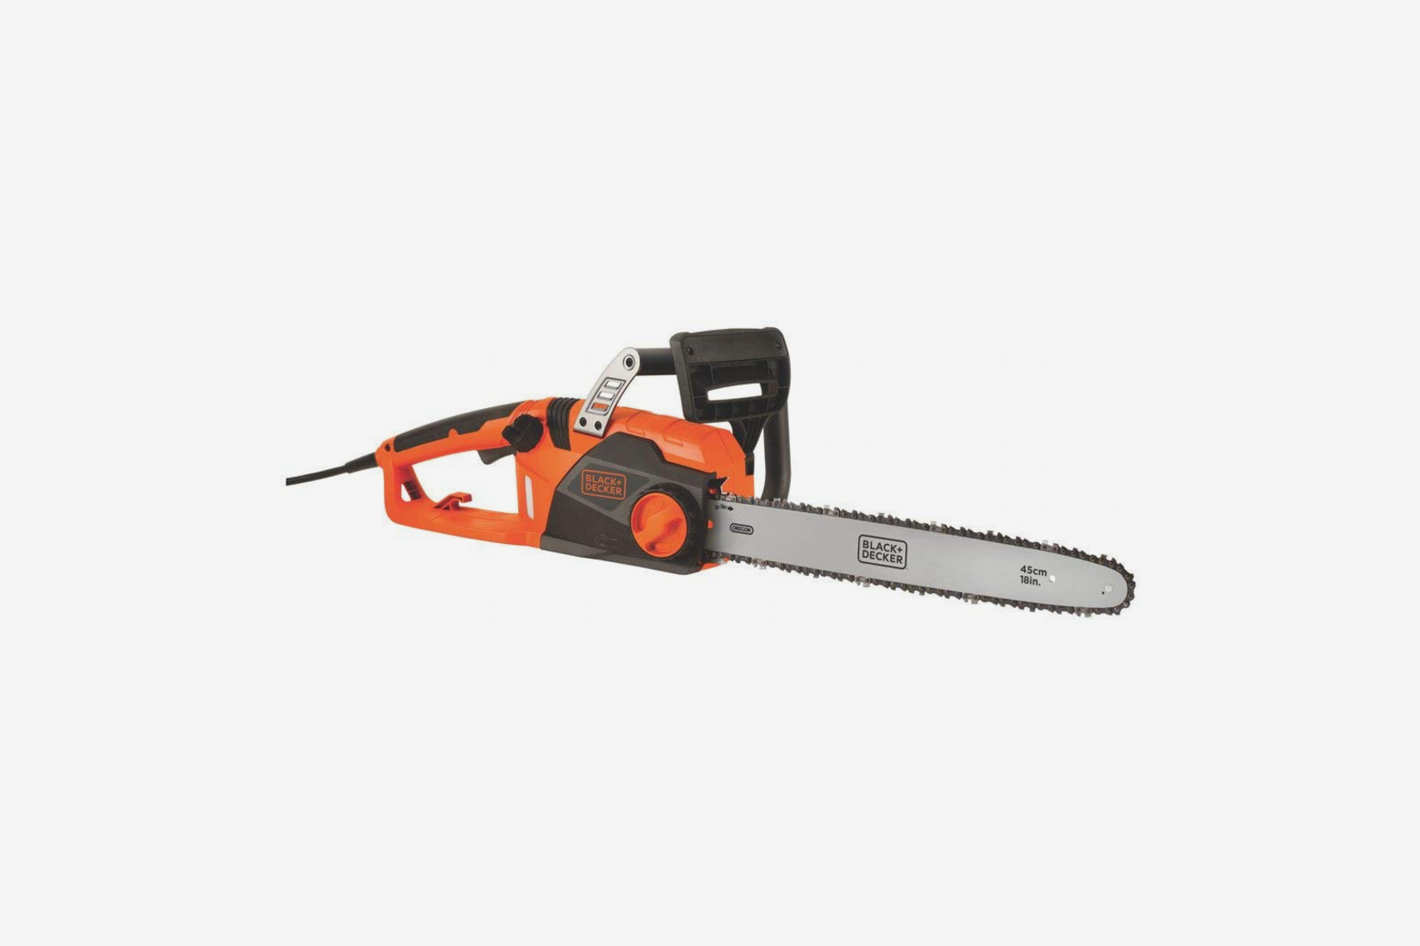 Black & Decker CS1518 15amp 18-Inch Corded Chainsaw